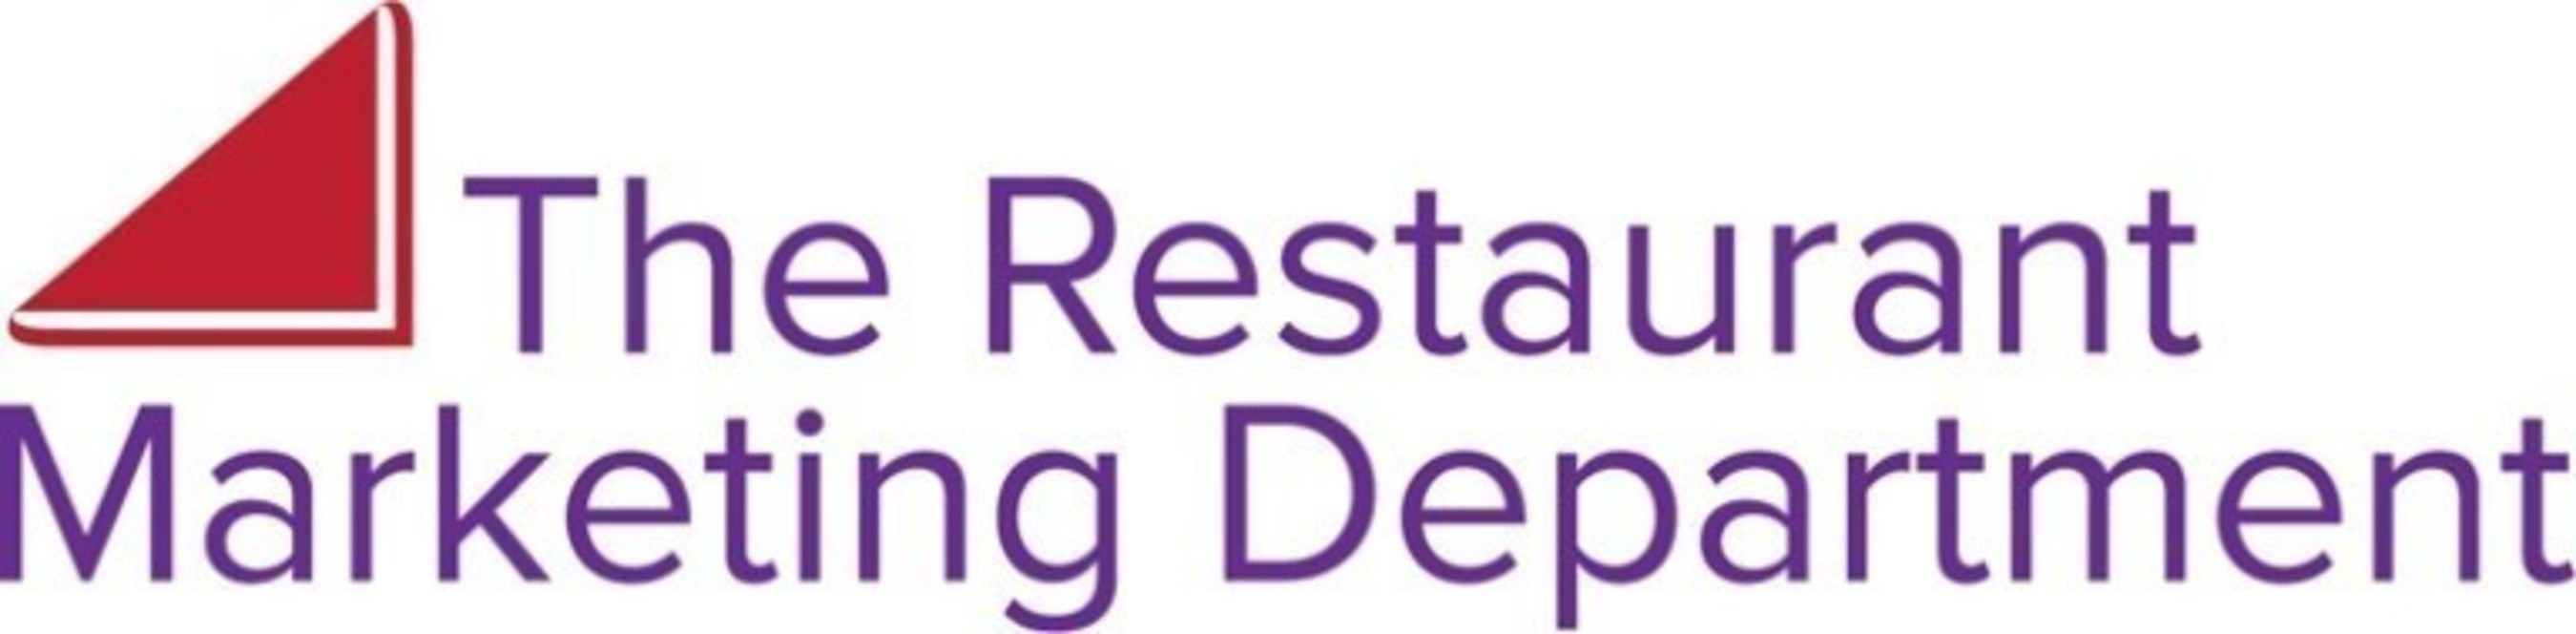 The 'Uber' of Restaurant Marketing: The Restaurant Marketing Department Launches in January 2016